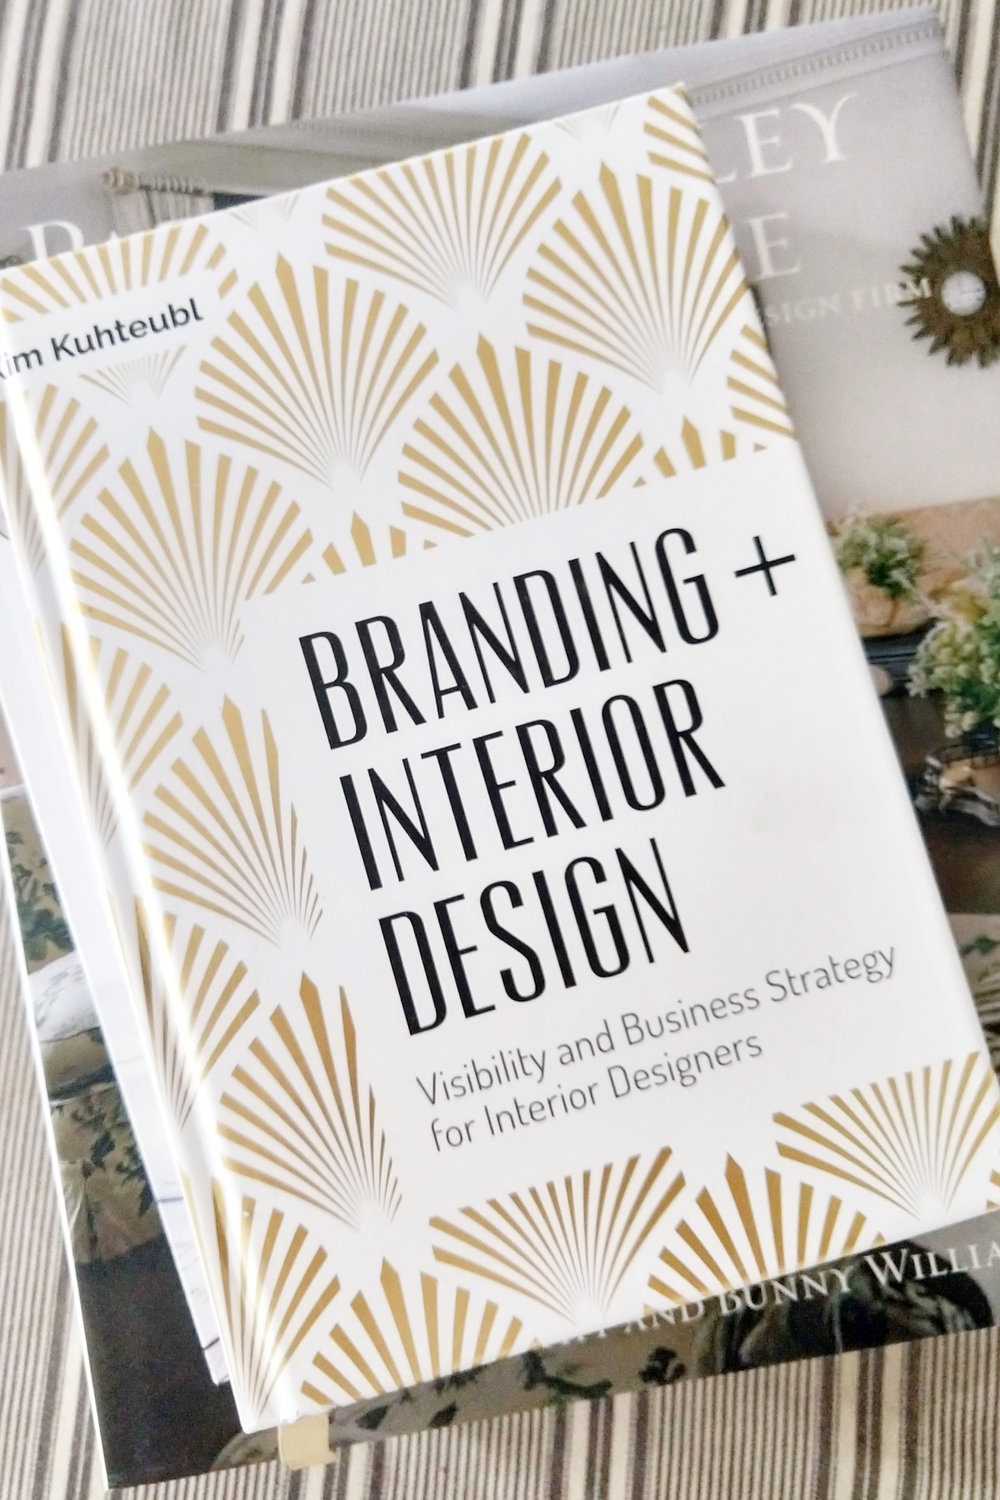 Branding + Interior Design by Kim Kuhteubl, JHD Design School: Lesson 1, Jamie House Design, Design Blog